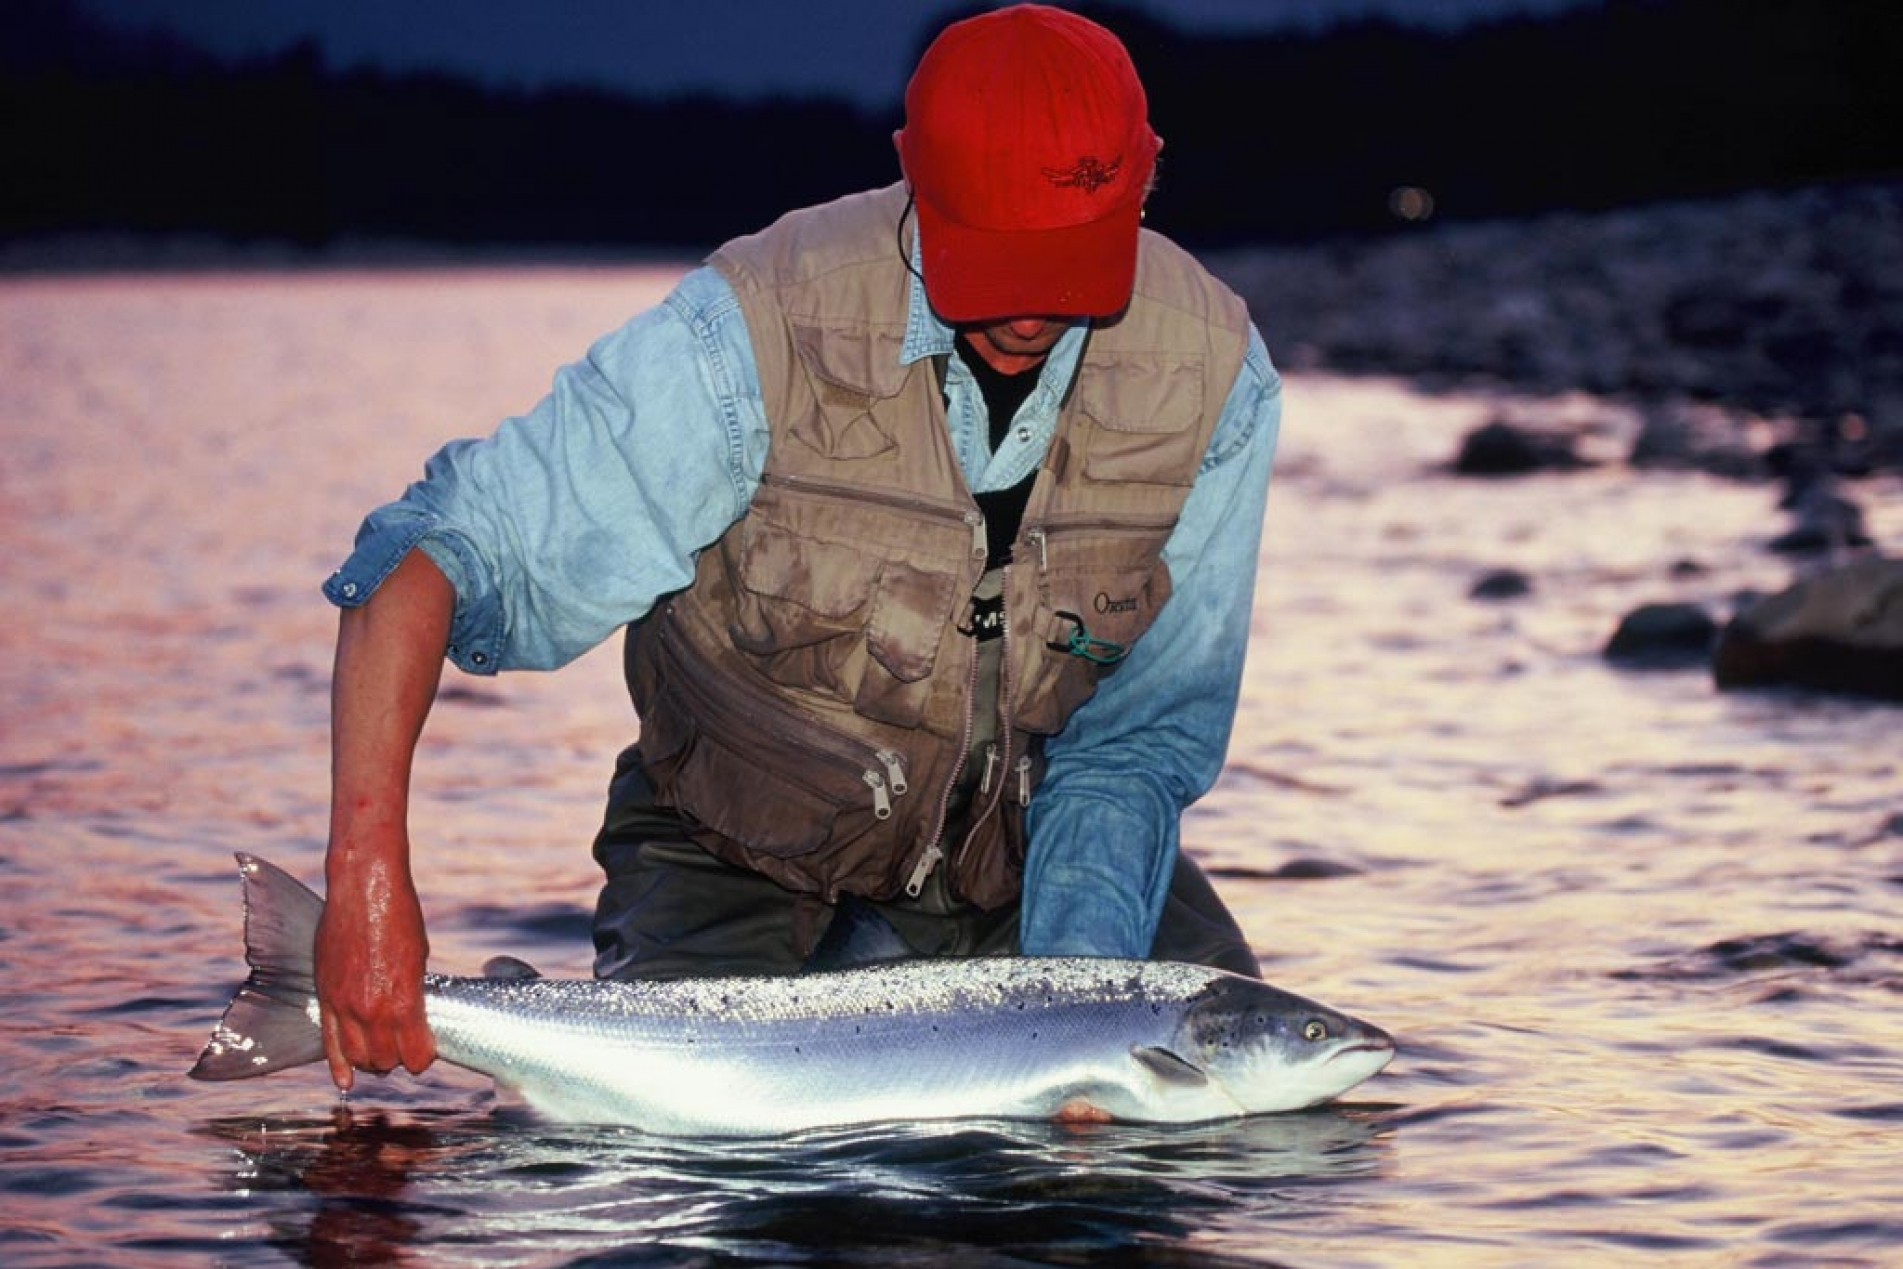 Gaula River-Norway Freshwater fishing guided trips, vacations, and